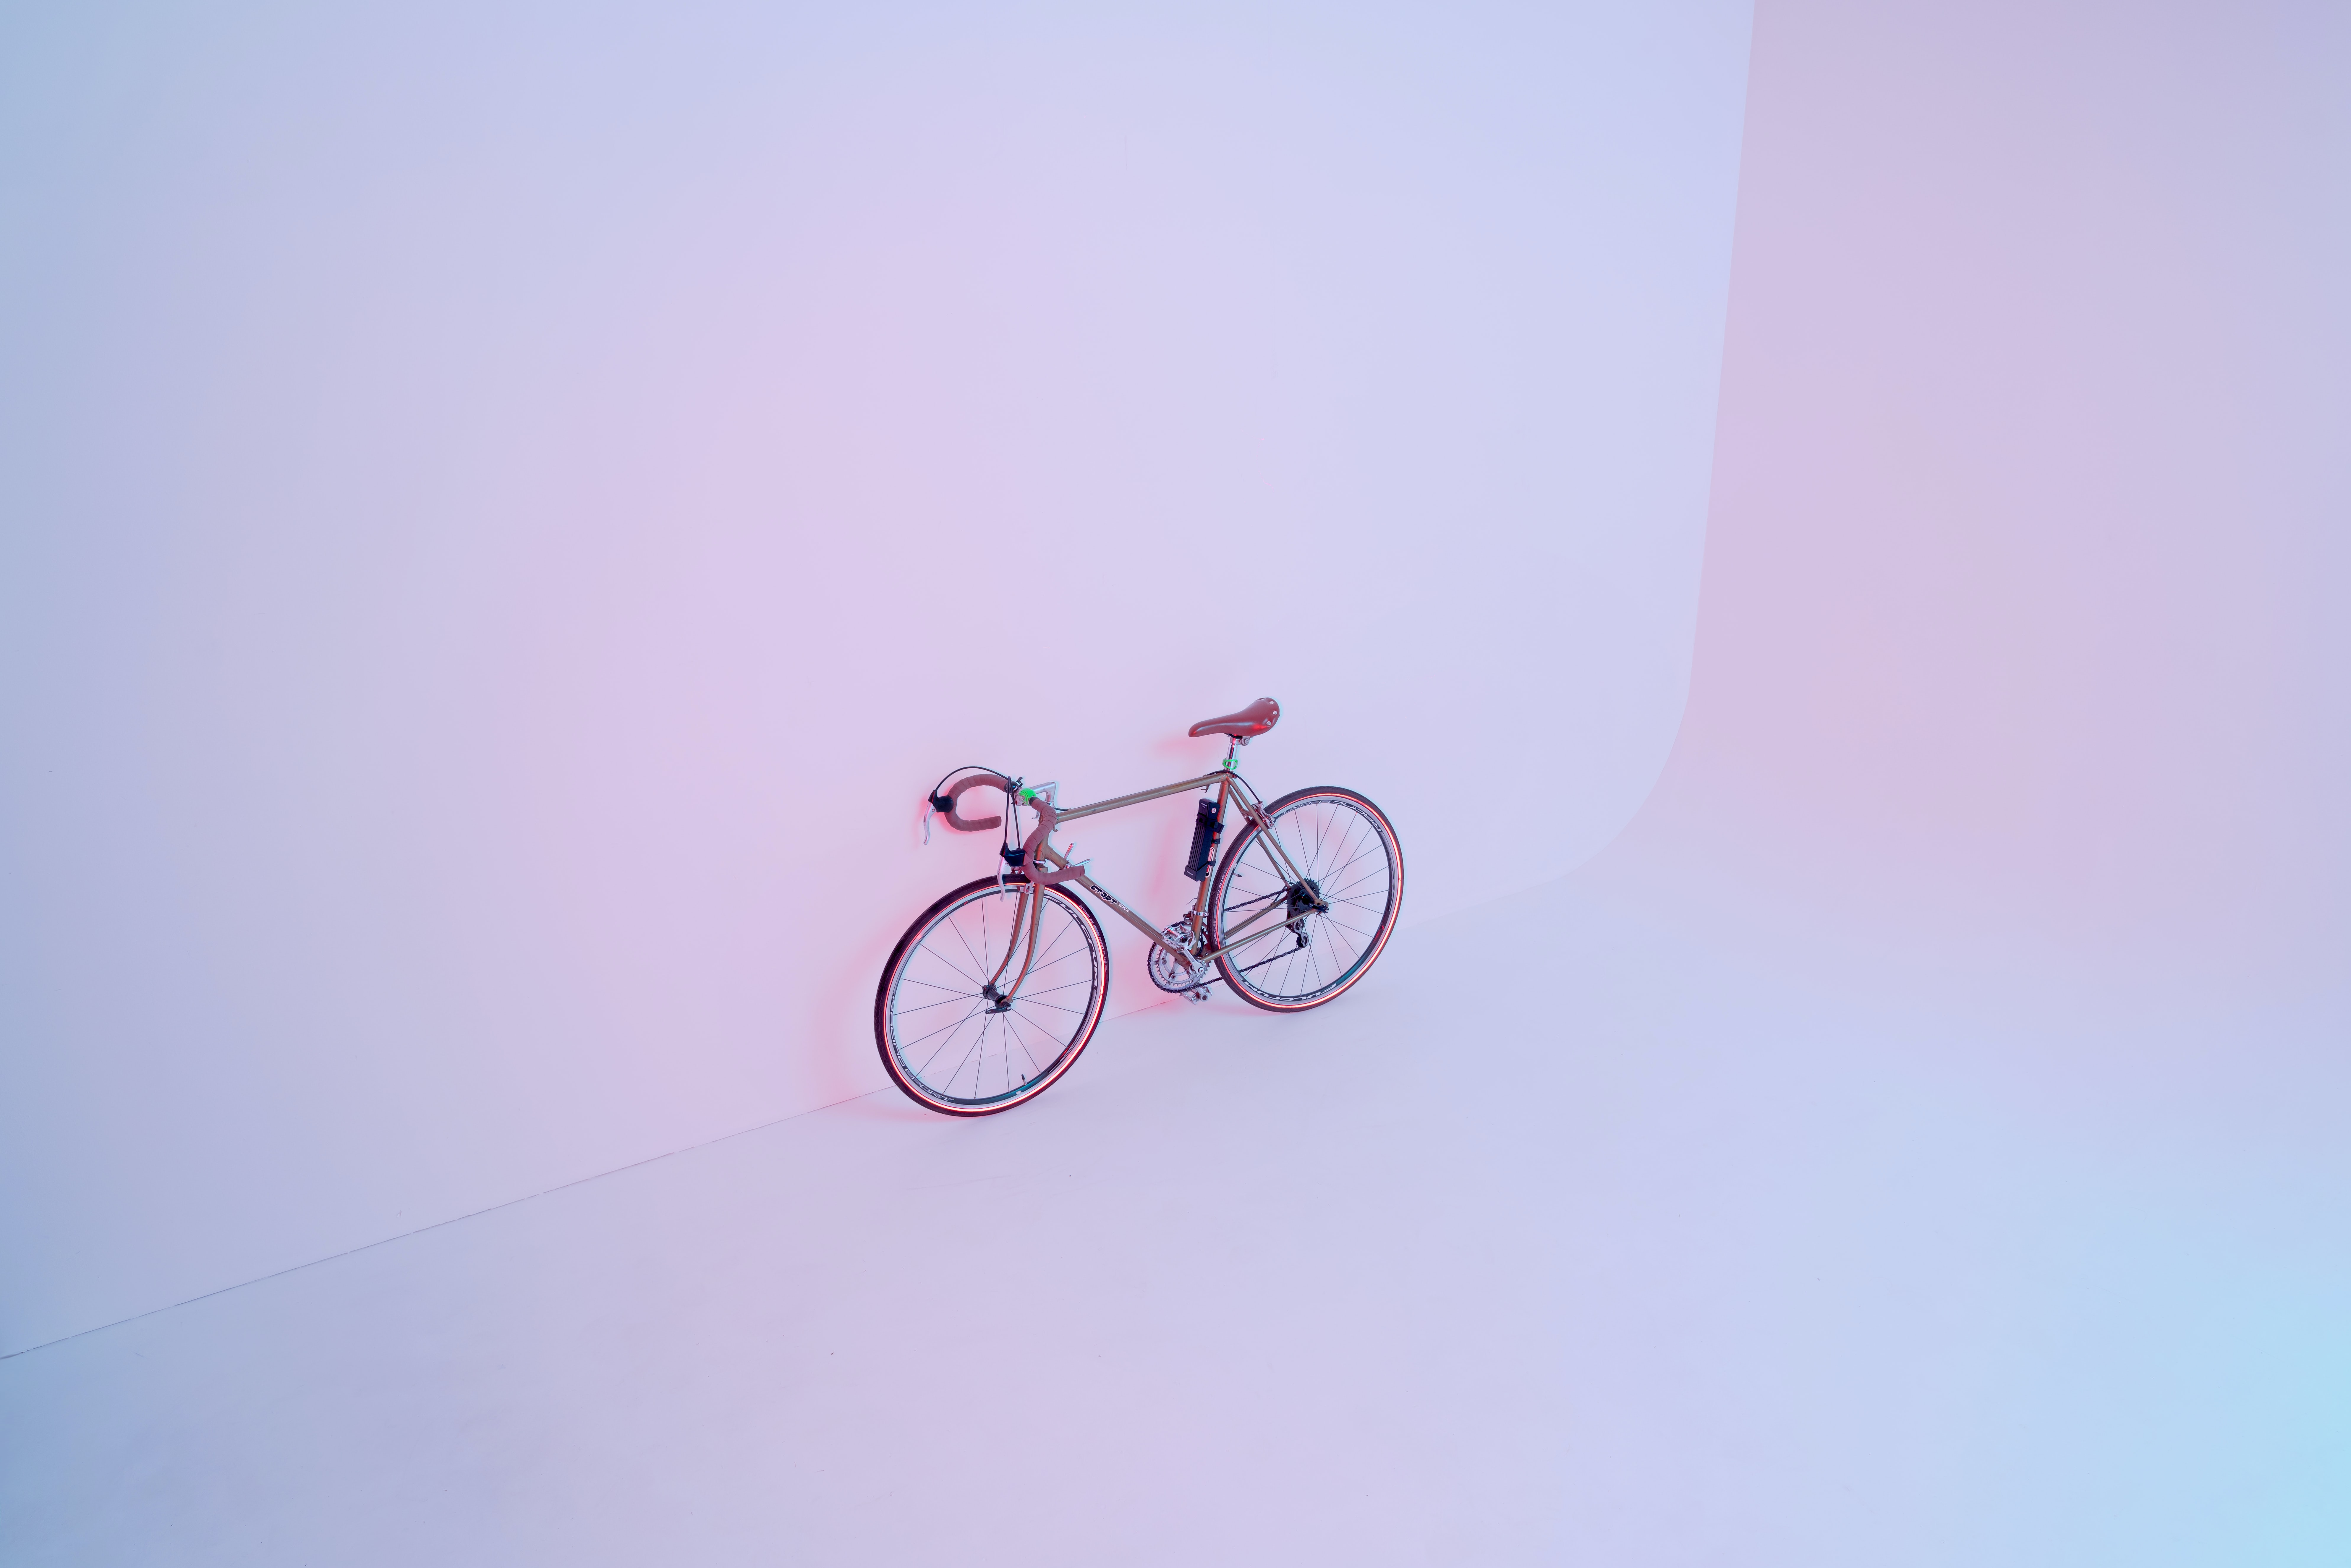 A bicycle leaning against a white wall.